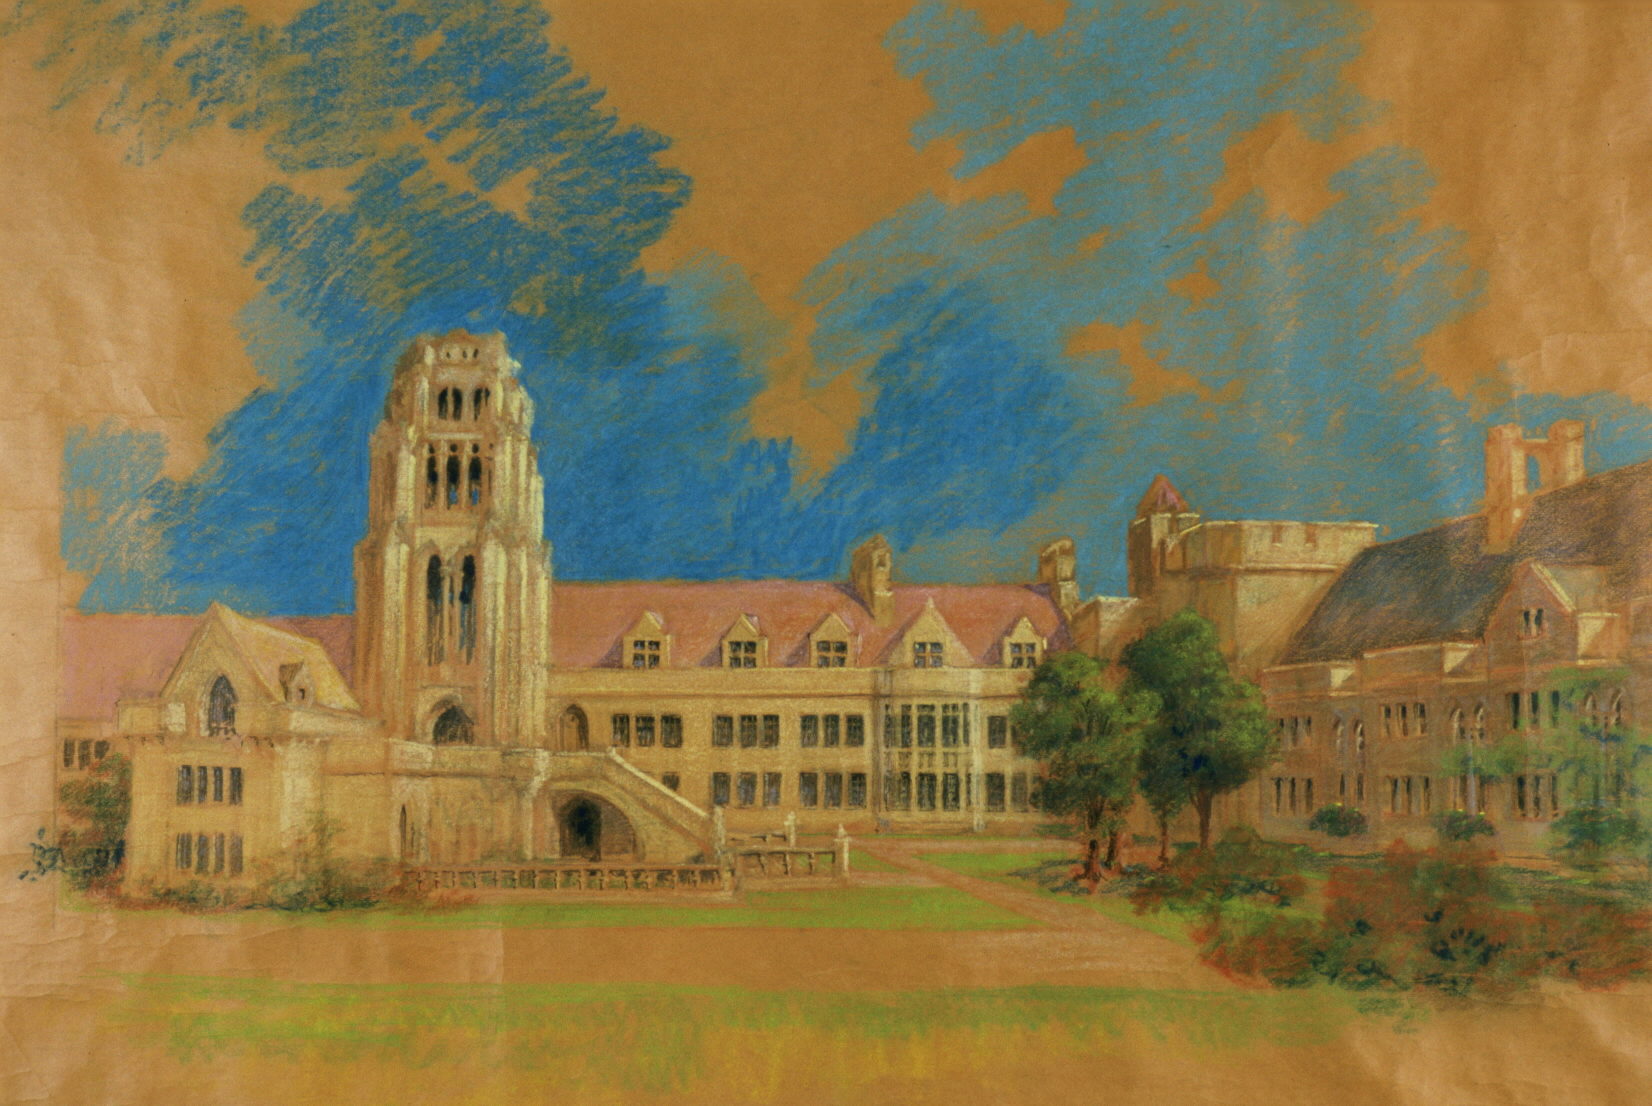 Maybeck & White, College Court with Library Tower, 1923, Pastel, graphite on kraft paper, 40 x 57 in.